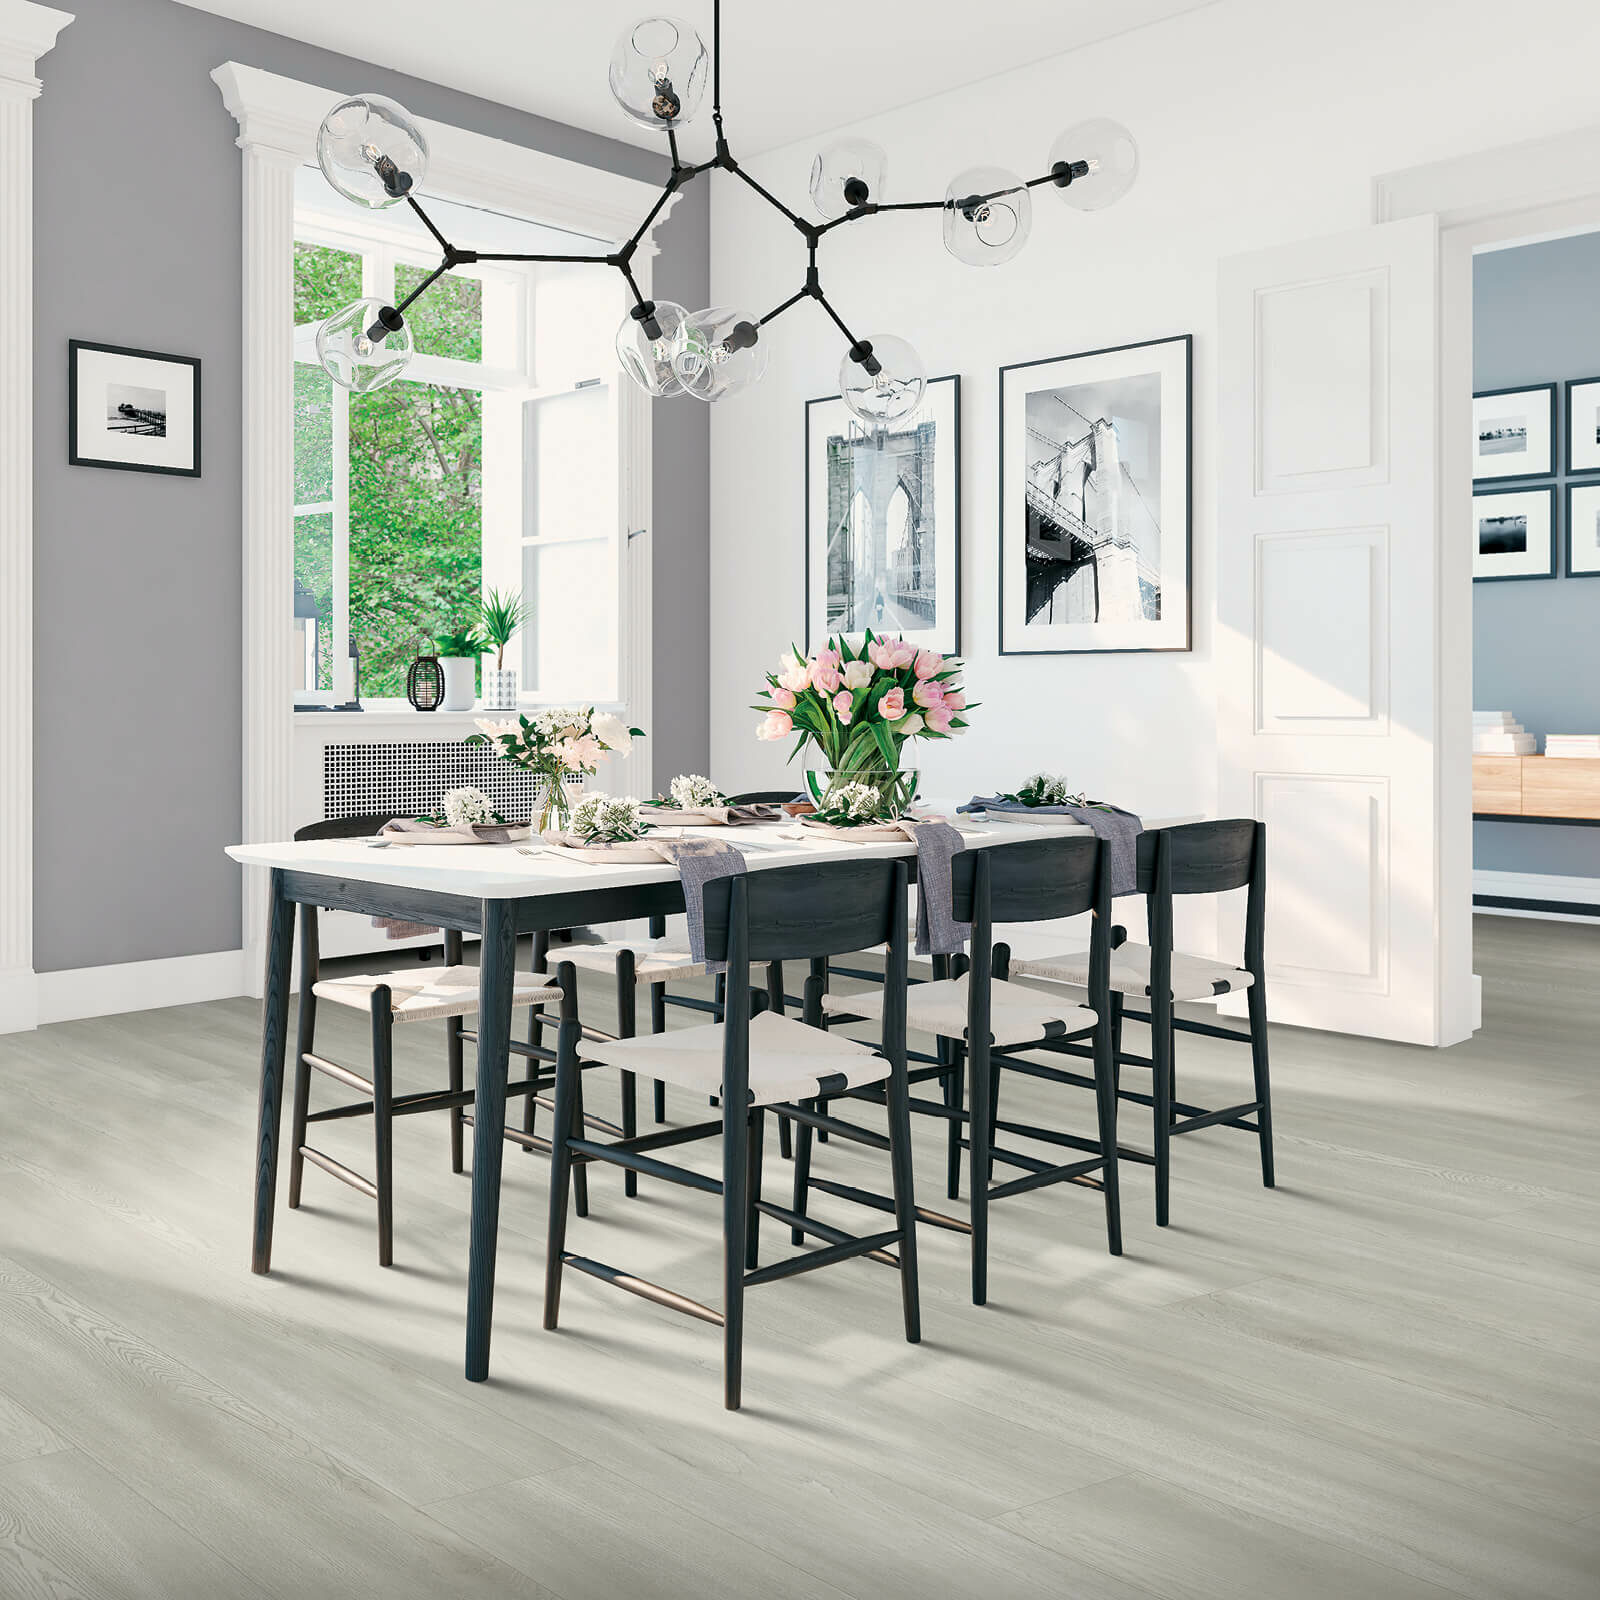 Laminate flooring of dining room | McCool's Flooring